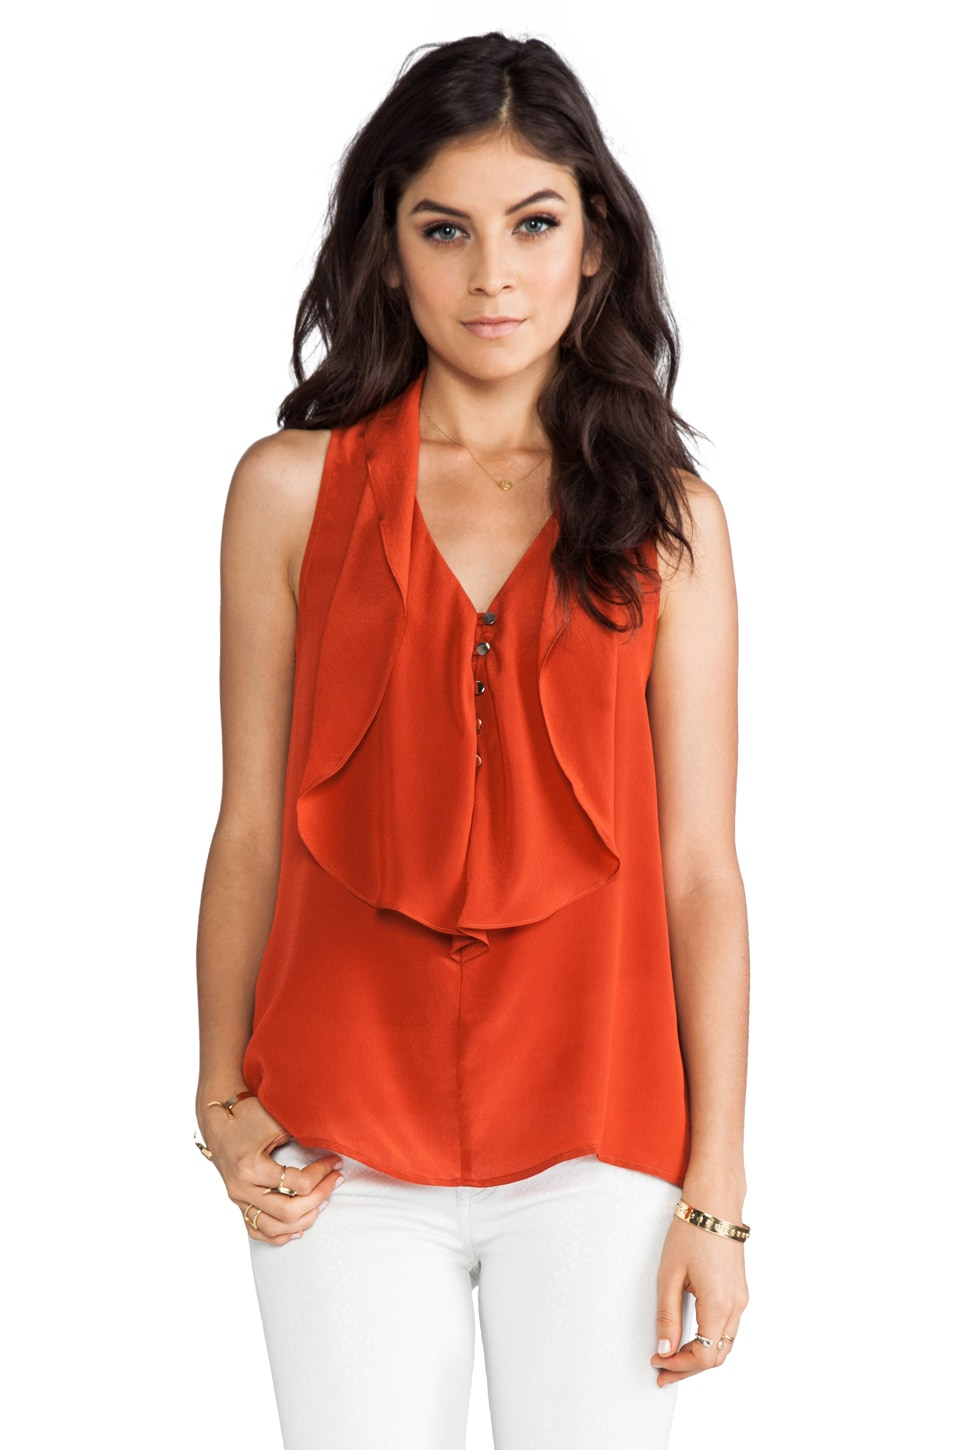 Greylin Penelope Ruffled Top in Rust